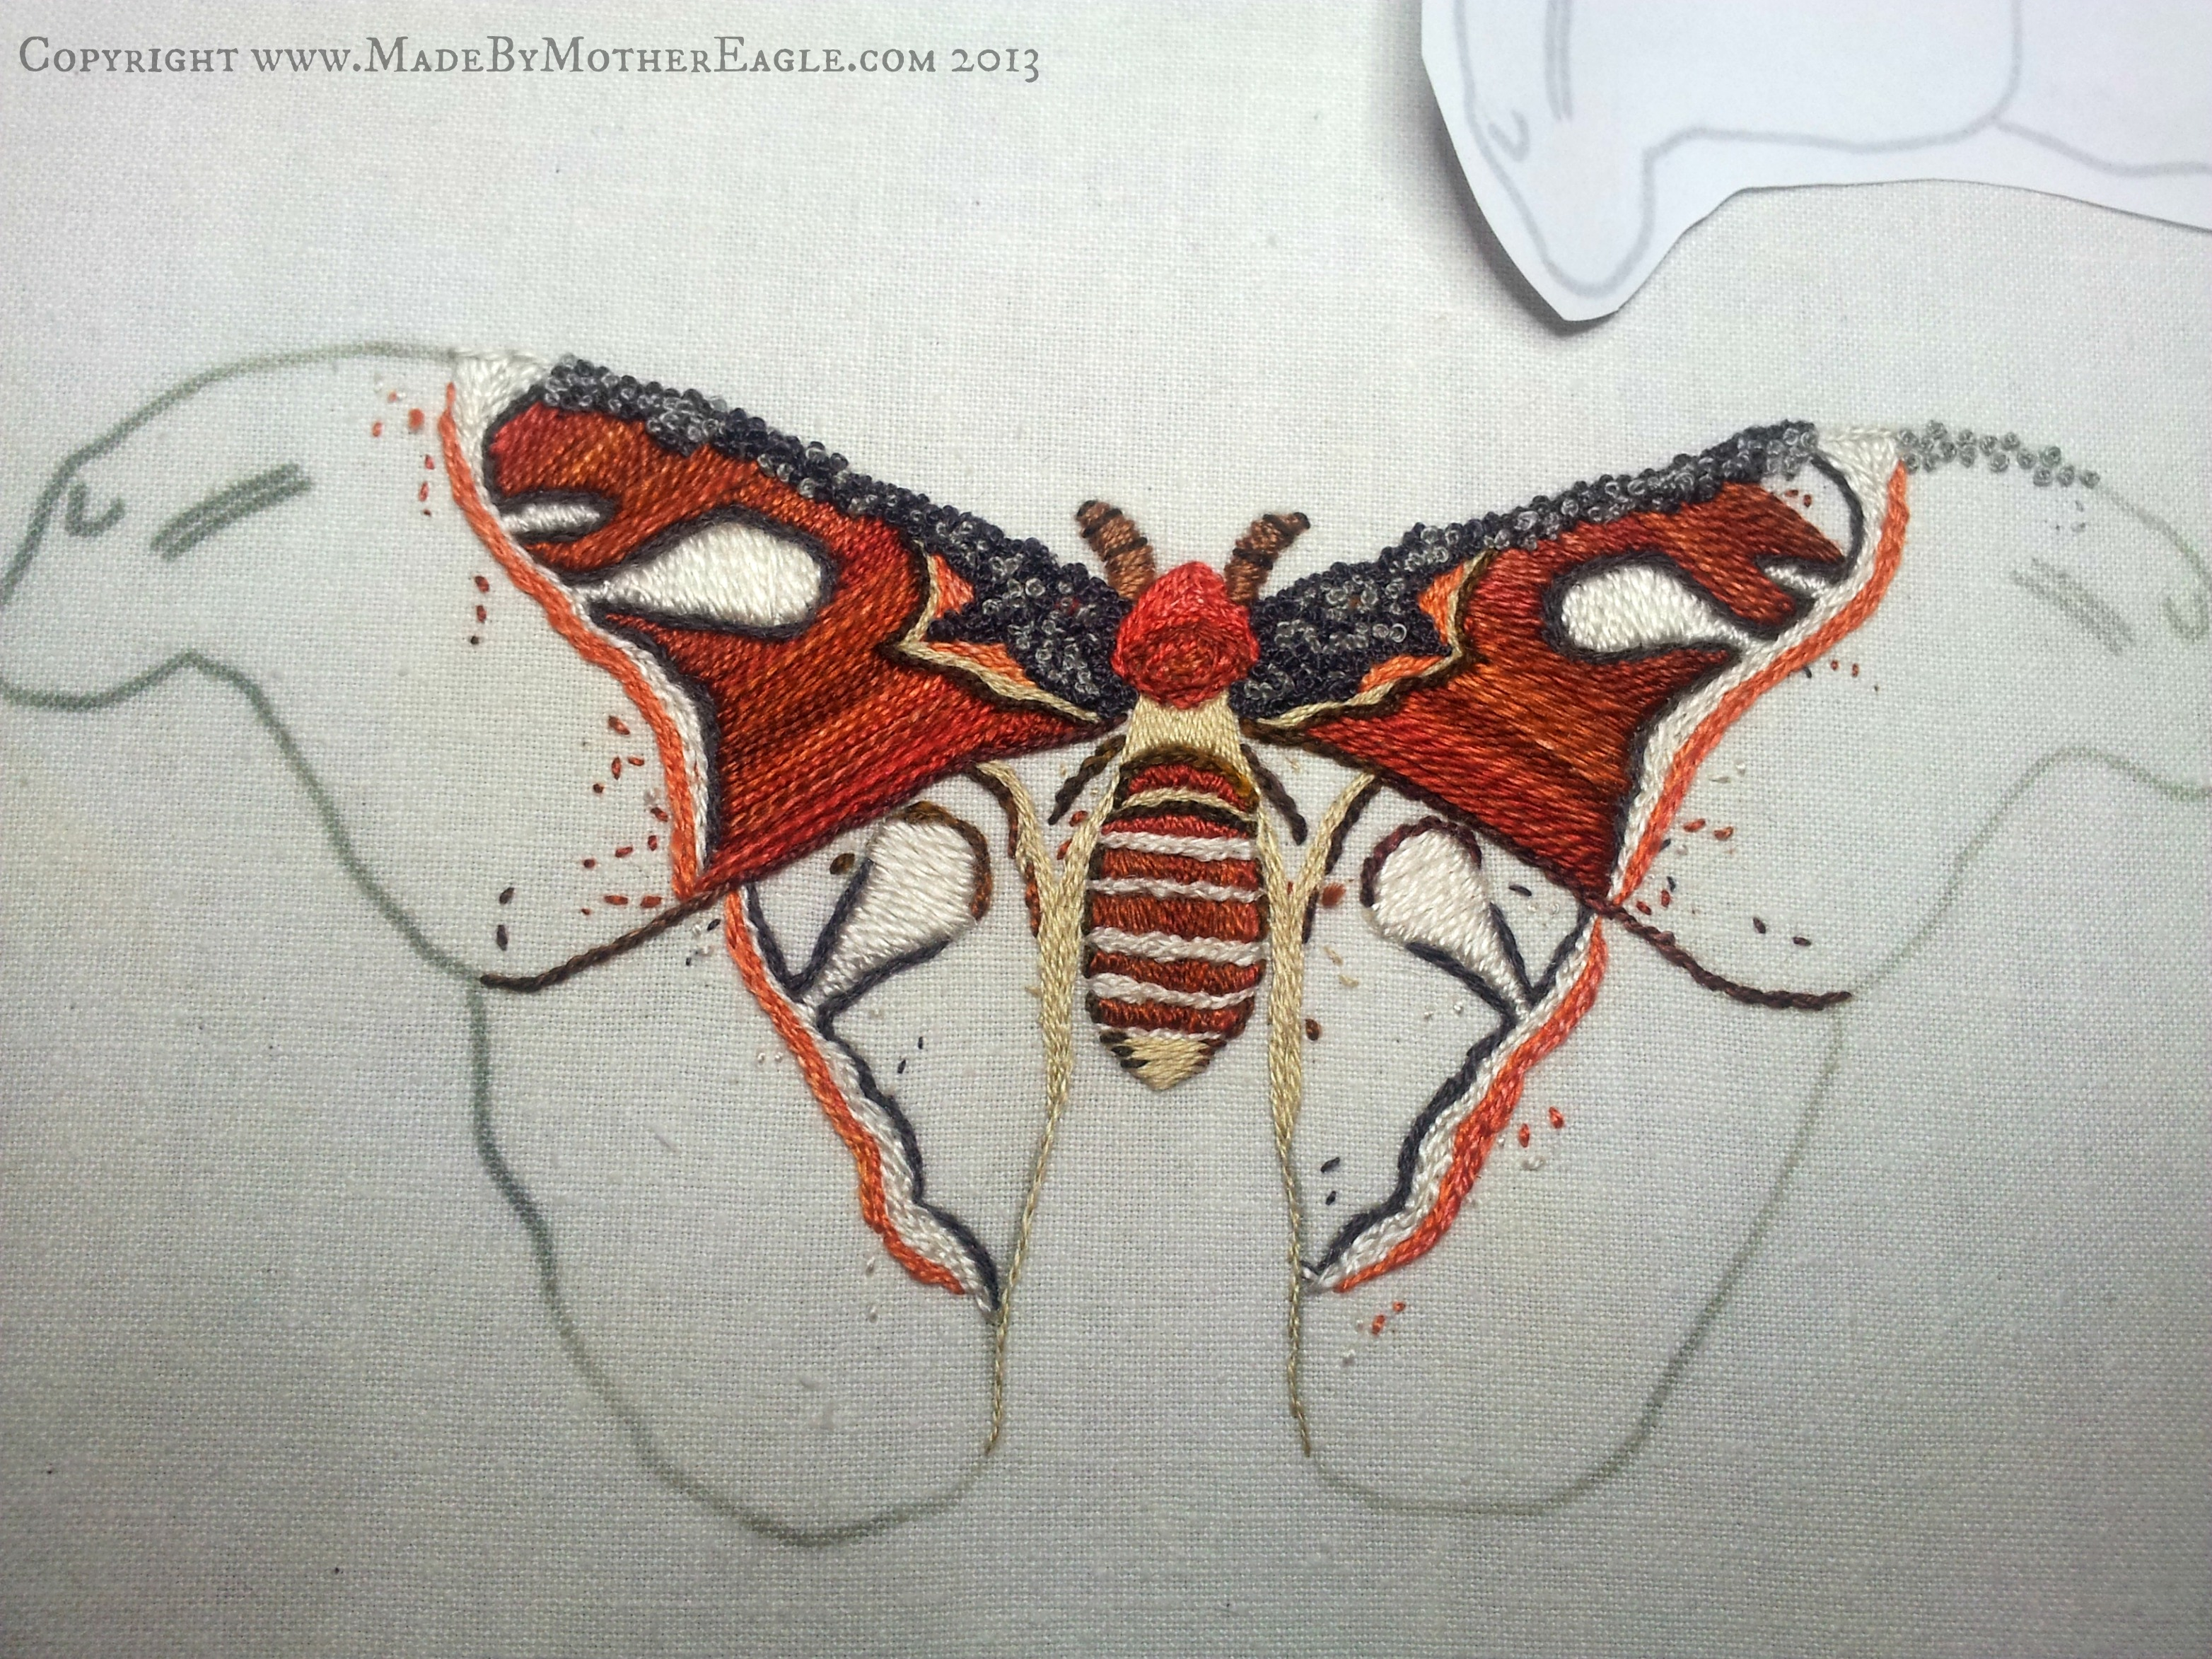 Atlas Moth Last Weeks Progress